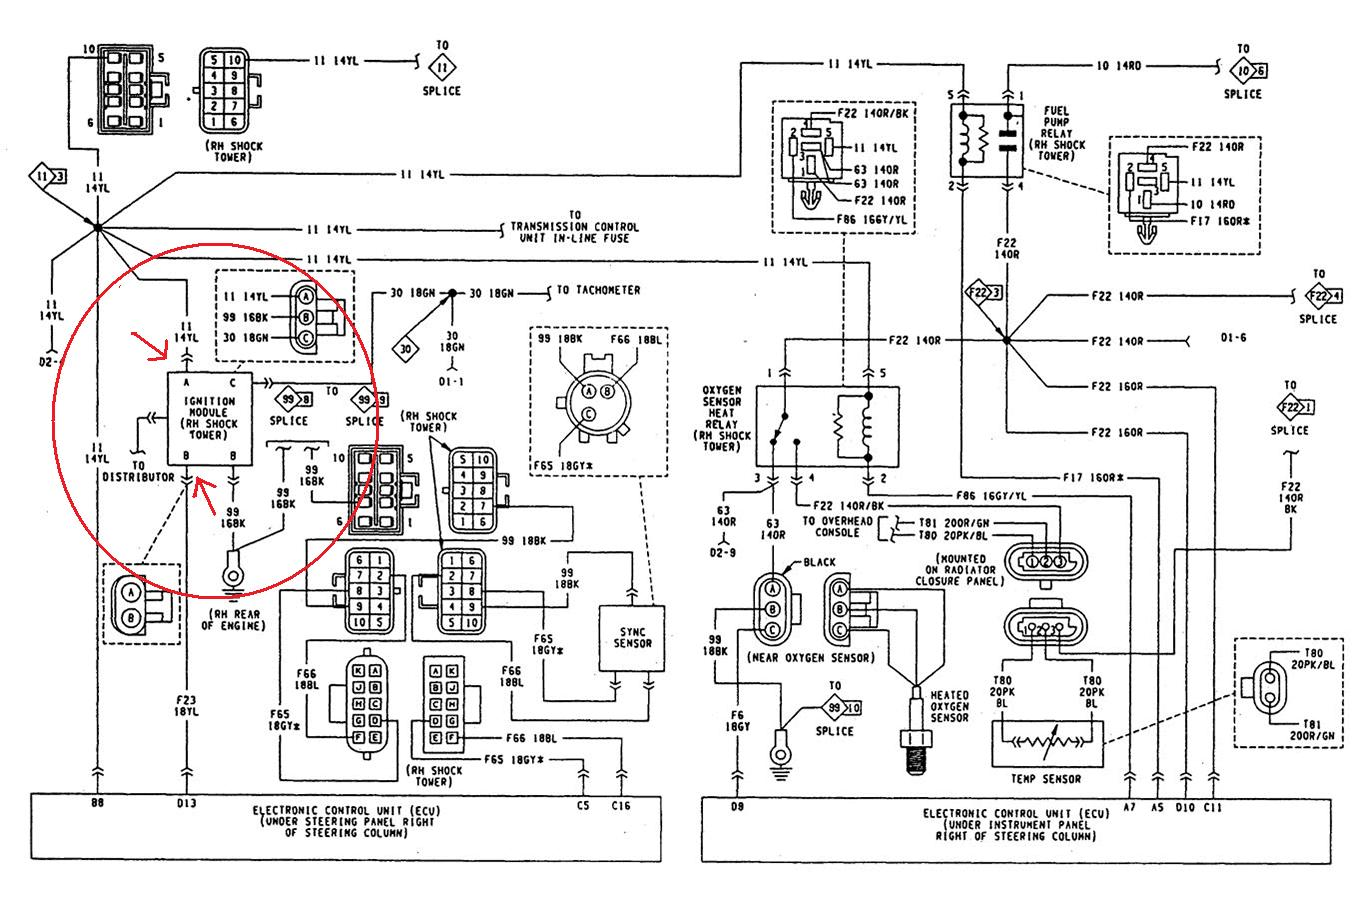 wiring diagram for 1994 jeep wrangler jeep cherokie lorado: my 1990 jeep cherokie lorado, no spark wiring diagram for 1990 jeep wrangler